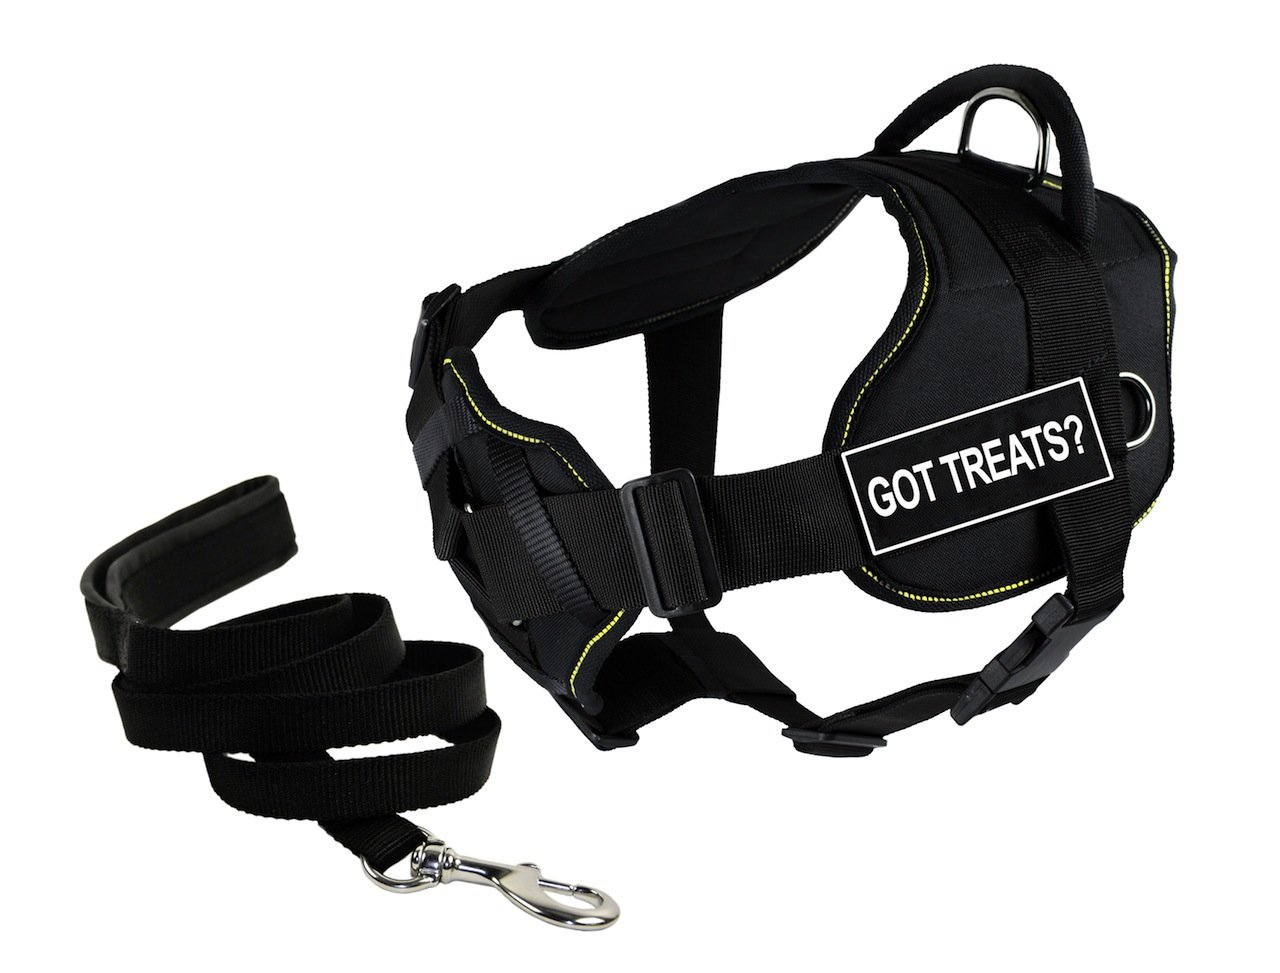 Dean & Tyler Bundle of 34 to 47-Inch DT Fun Harness with Chest Support and 6-Feet Stainless Snap Padded Puppy Leash, Got Treats, Black with Yellow Trim